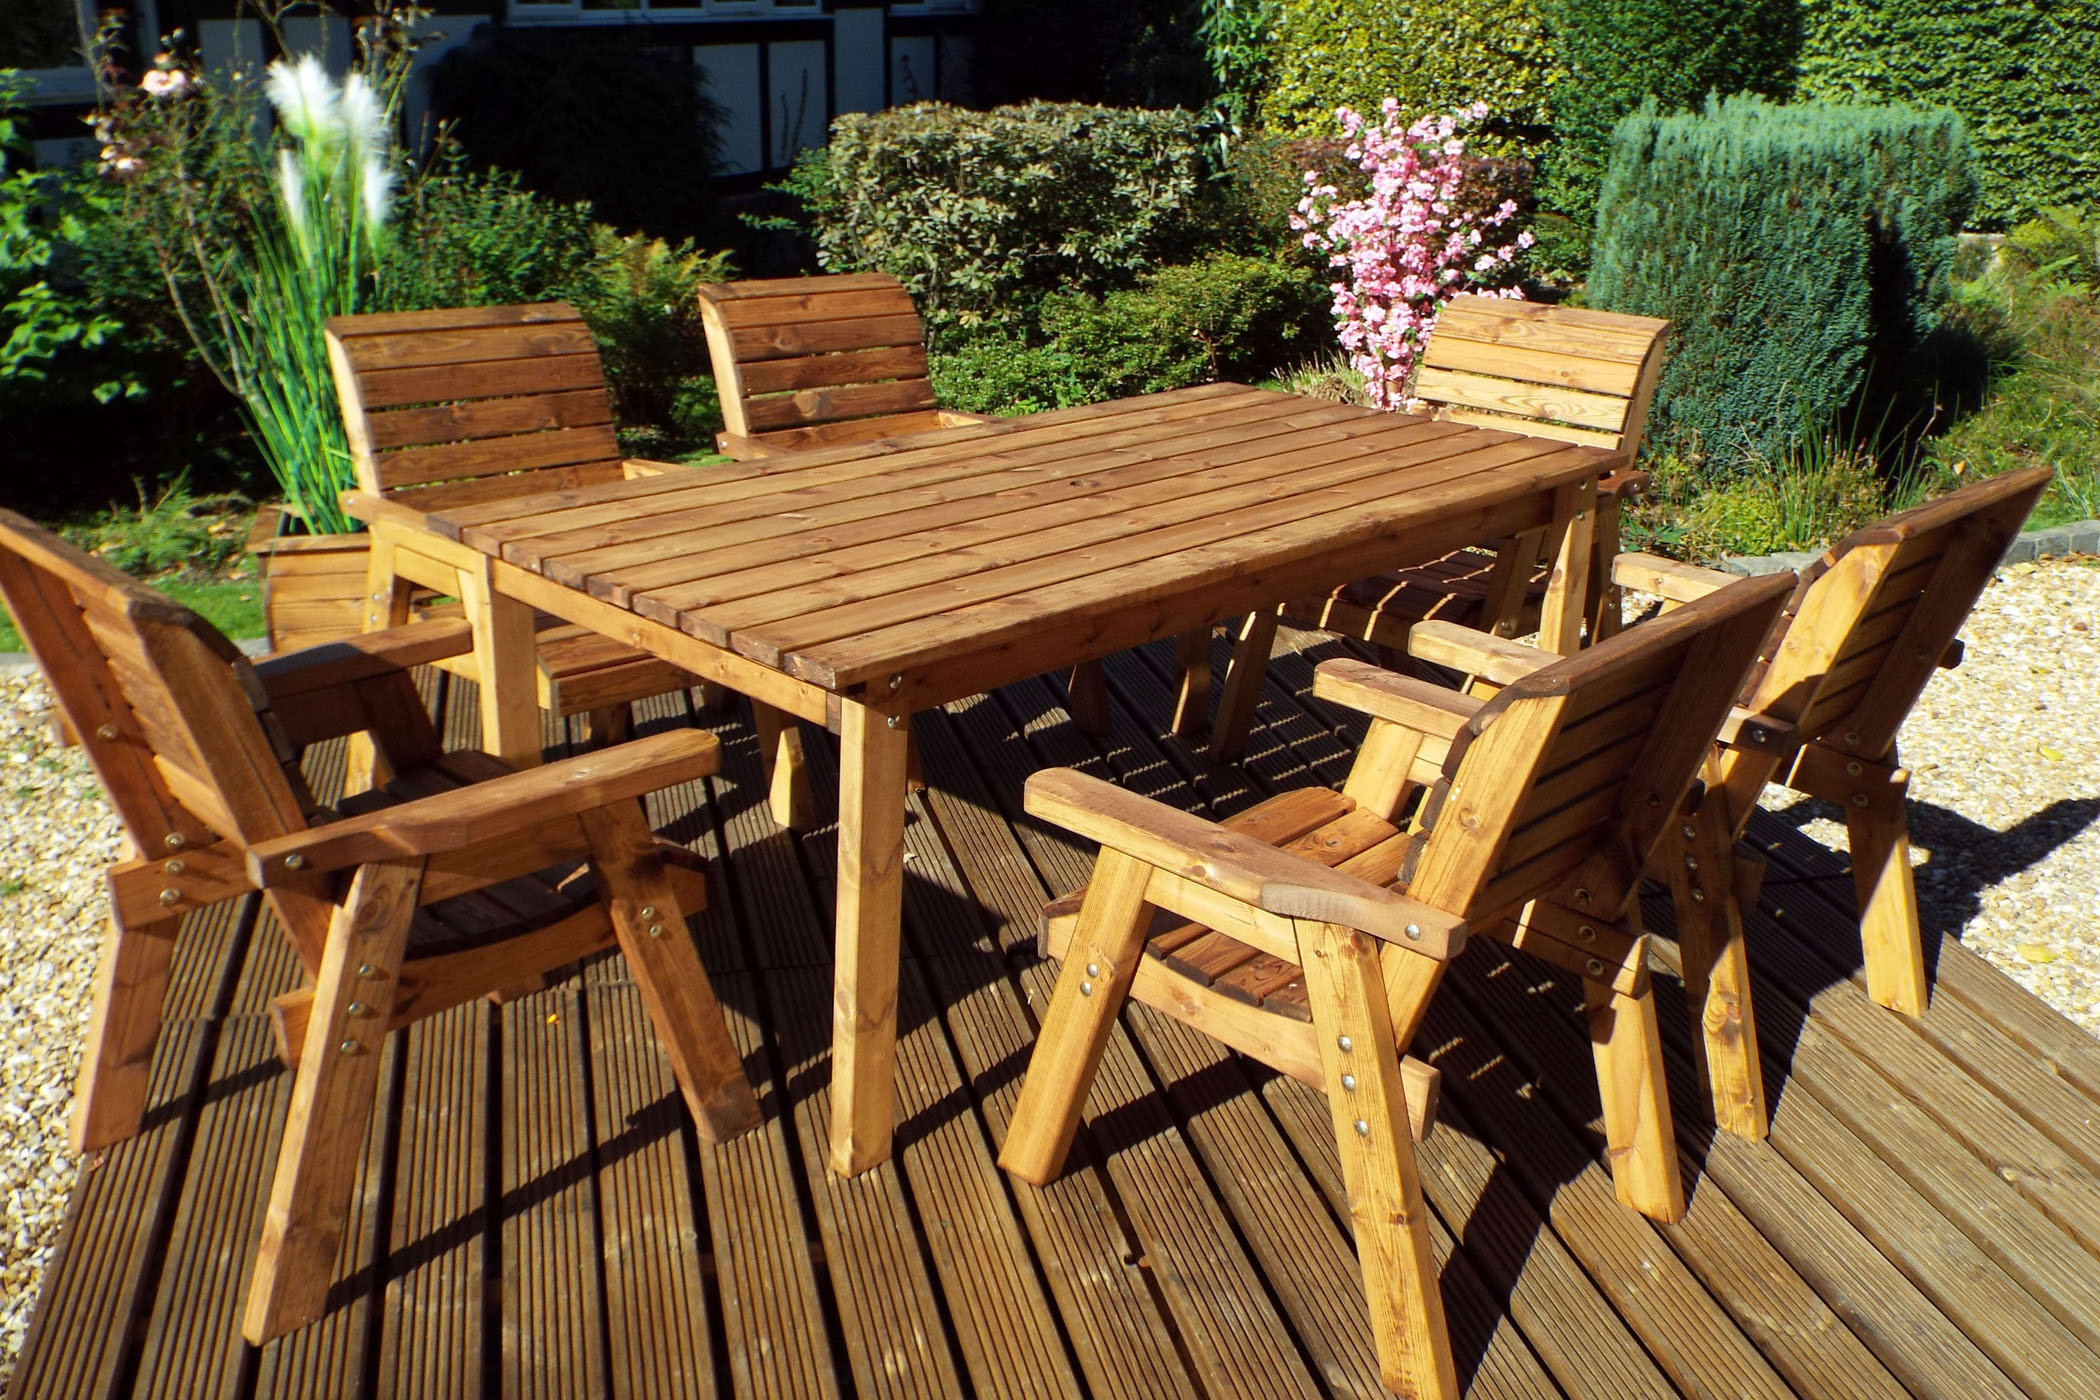 Wooden Garden Table And 6 Chairs Dining Set Solid Wood Outdoor Patio Decking Furniture